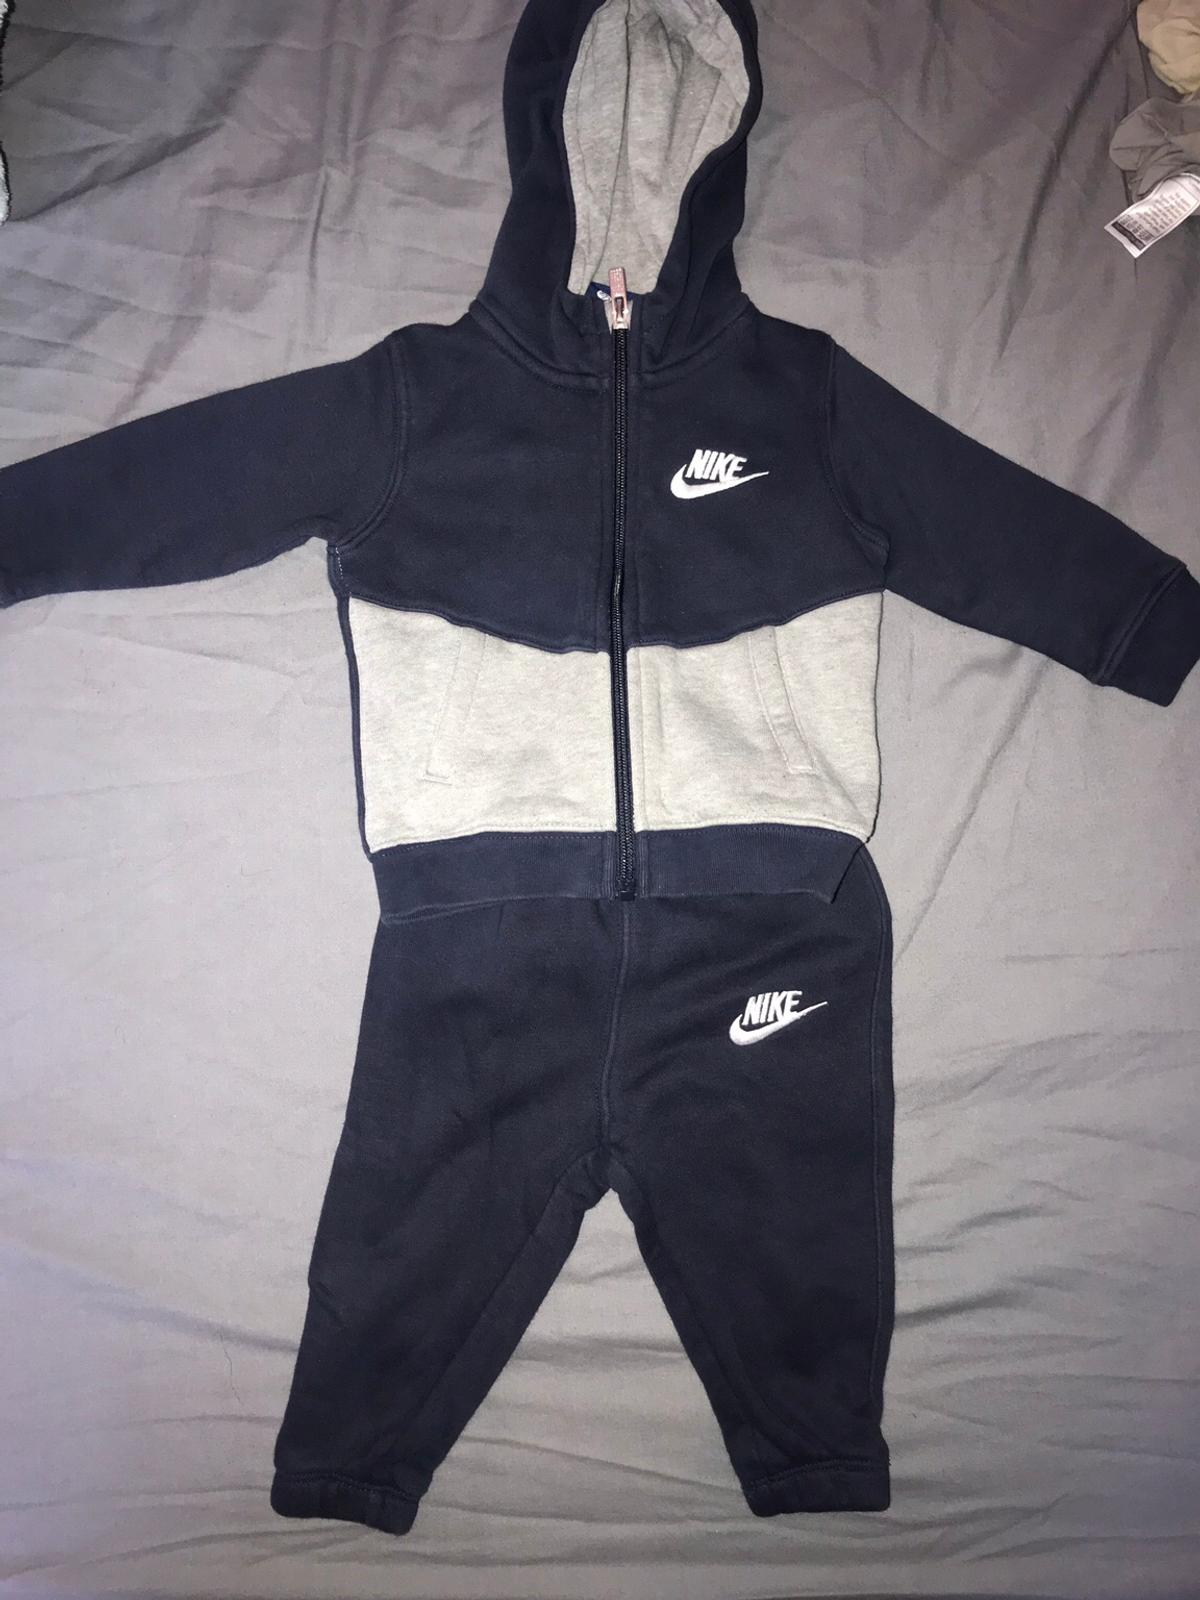 03ac45caf8 Baby boys Nike tracksuits size 9-12 months